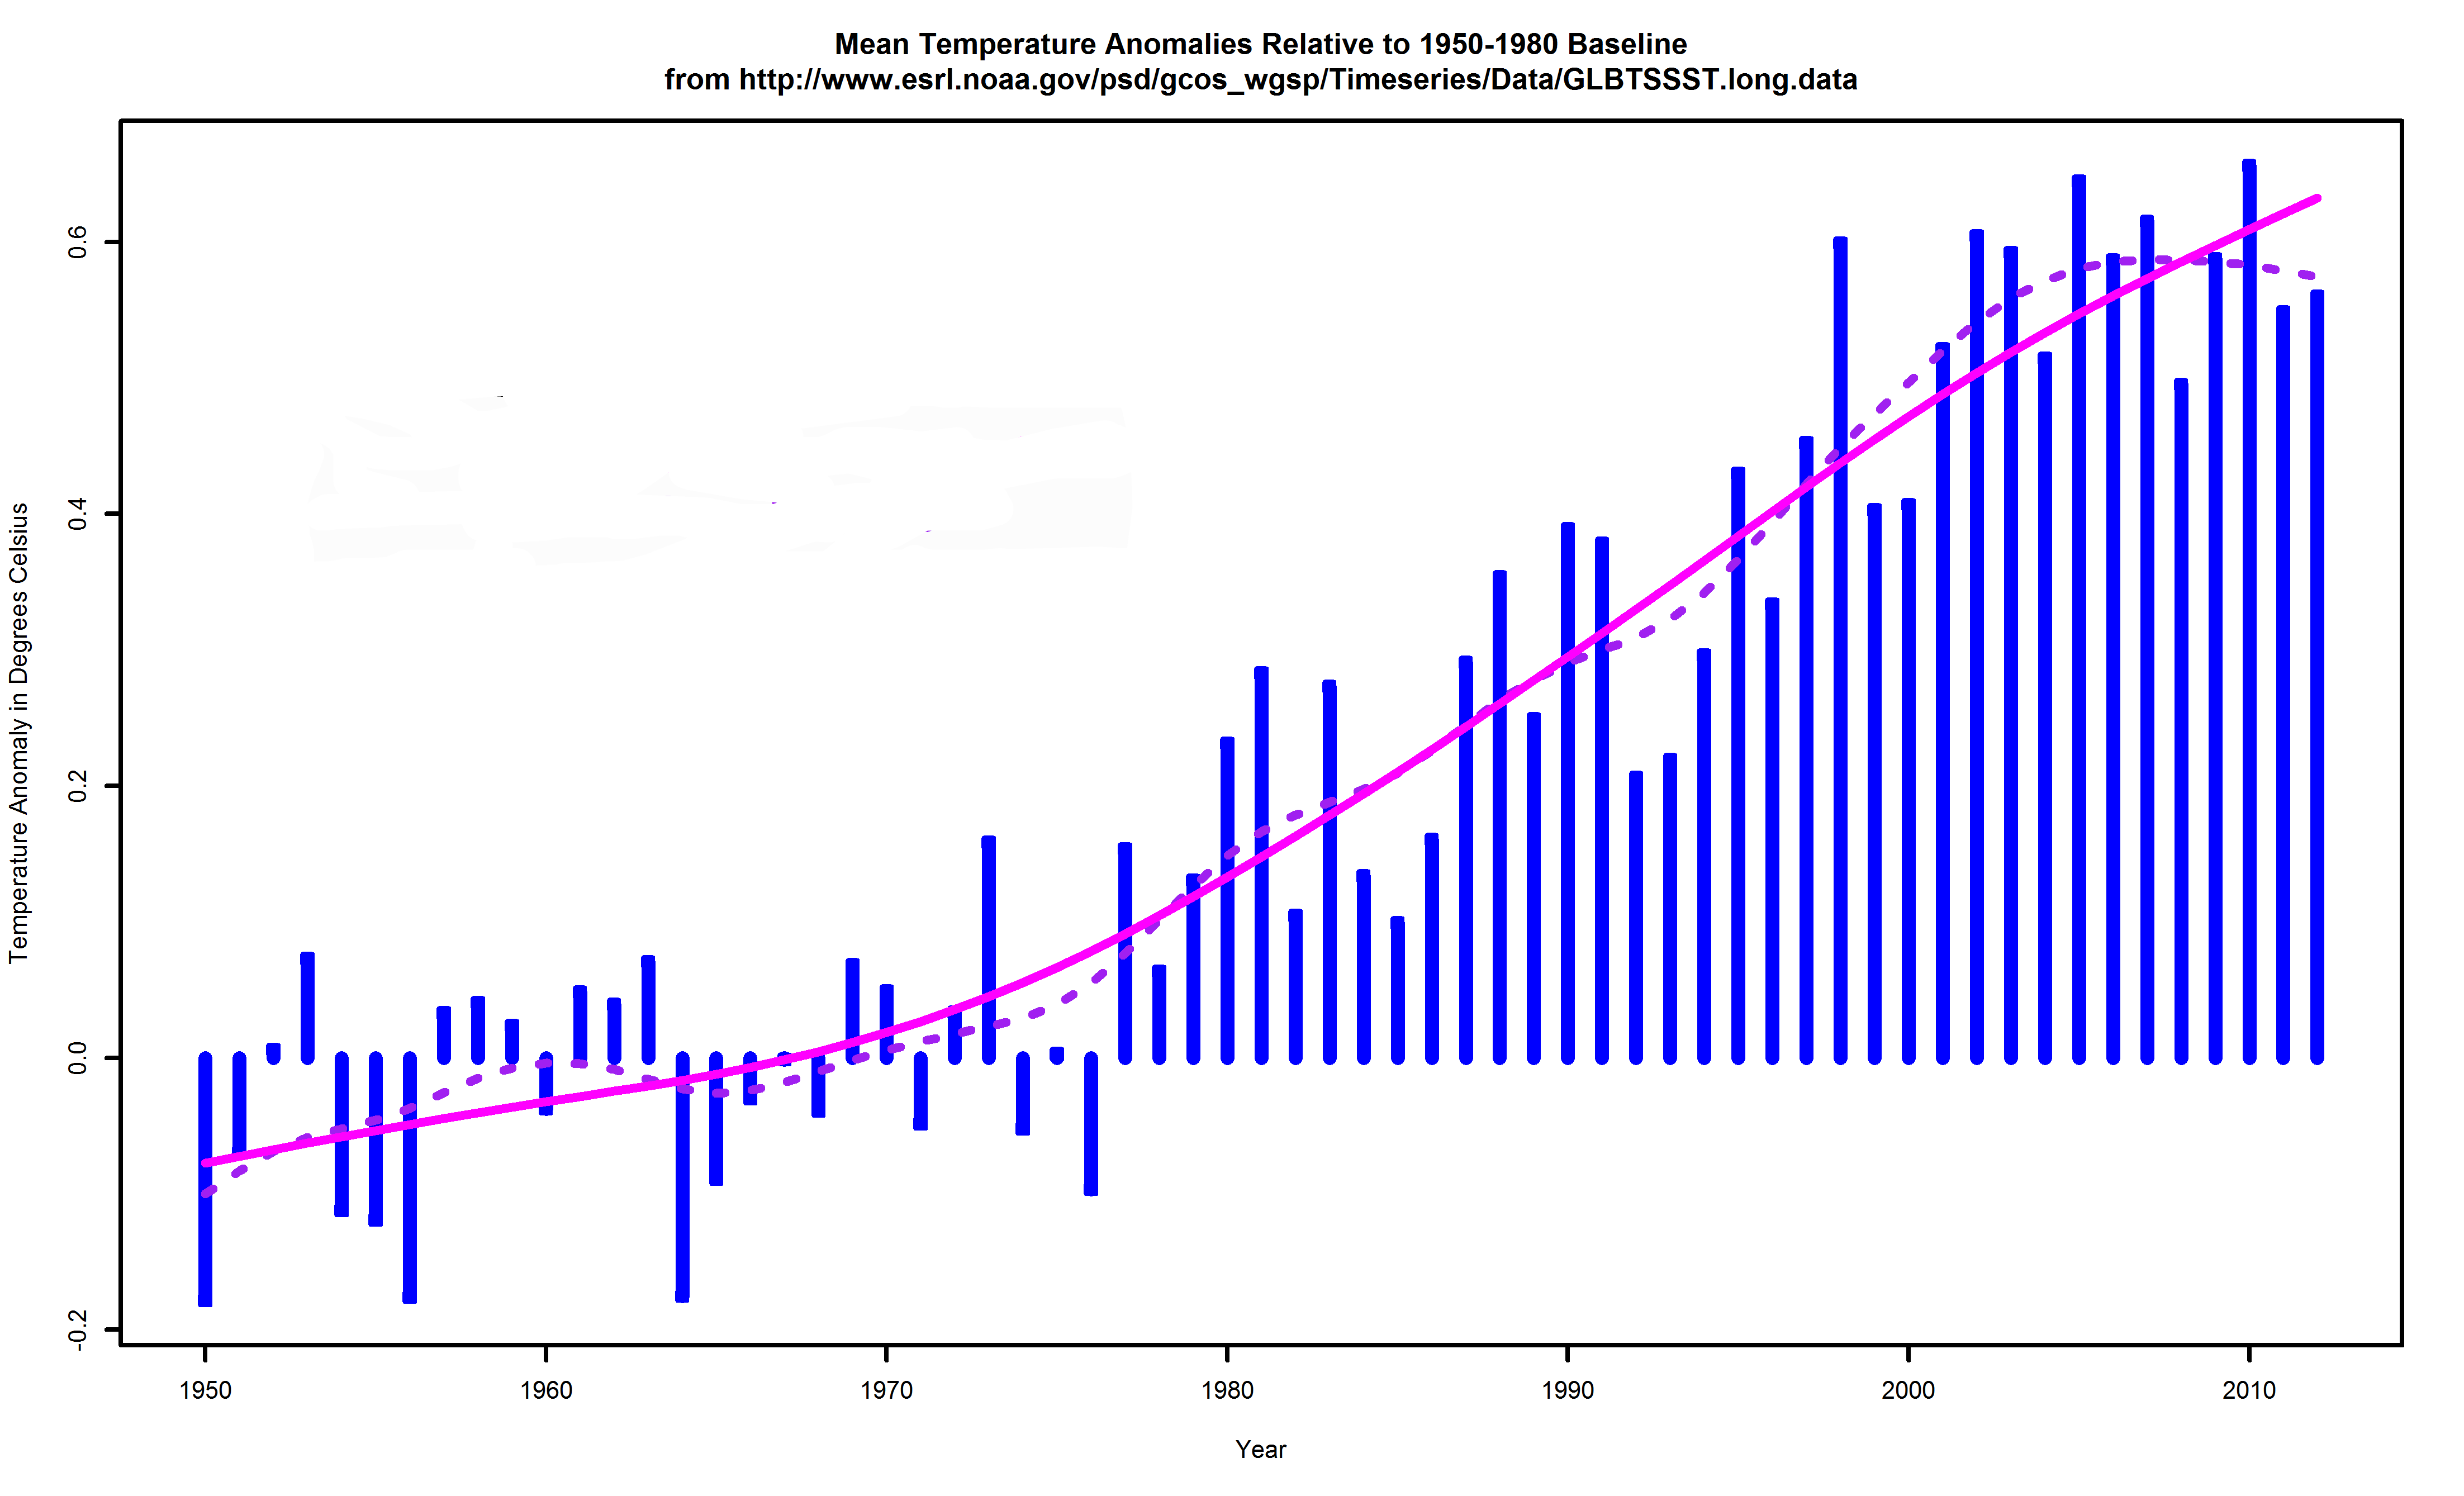 Global surface temperature anomalies relative to a 1950-1980 baseline